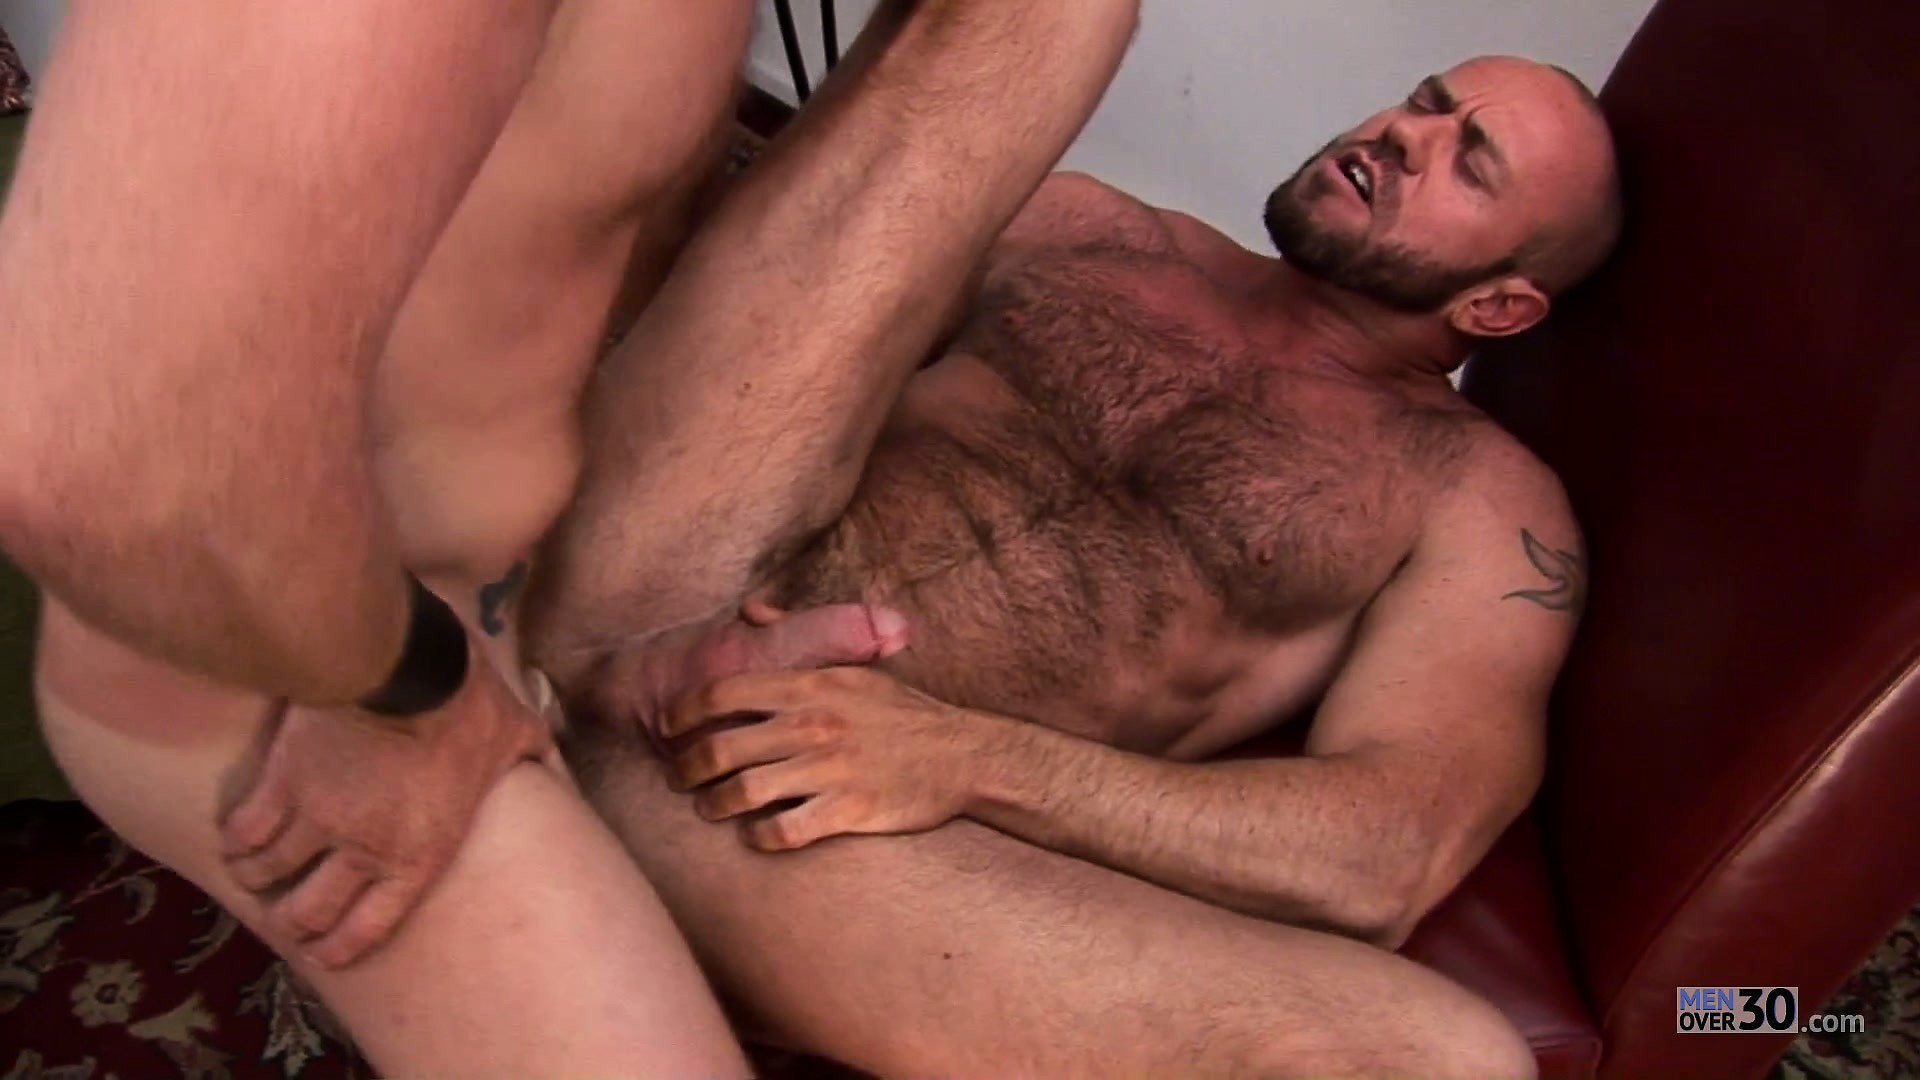 Porno Video of Big Gay Bear Riding A Strong Dick Like A Slutty Little Cowgirl